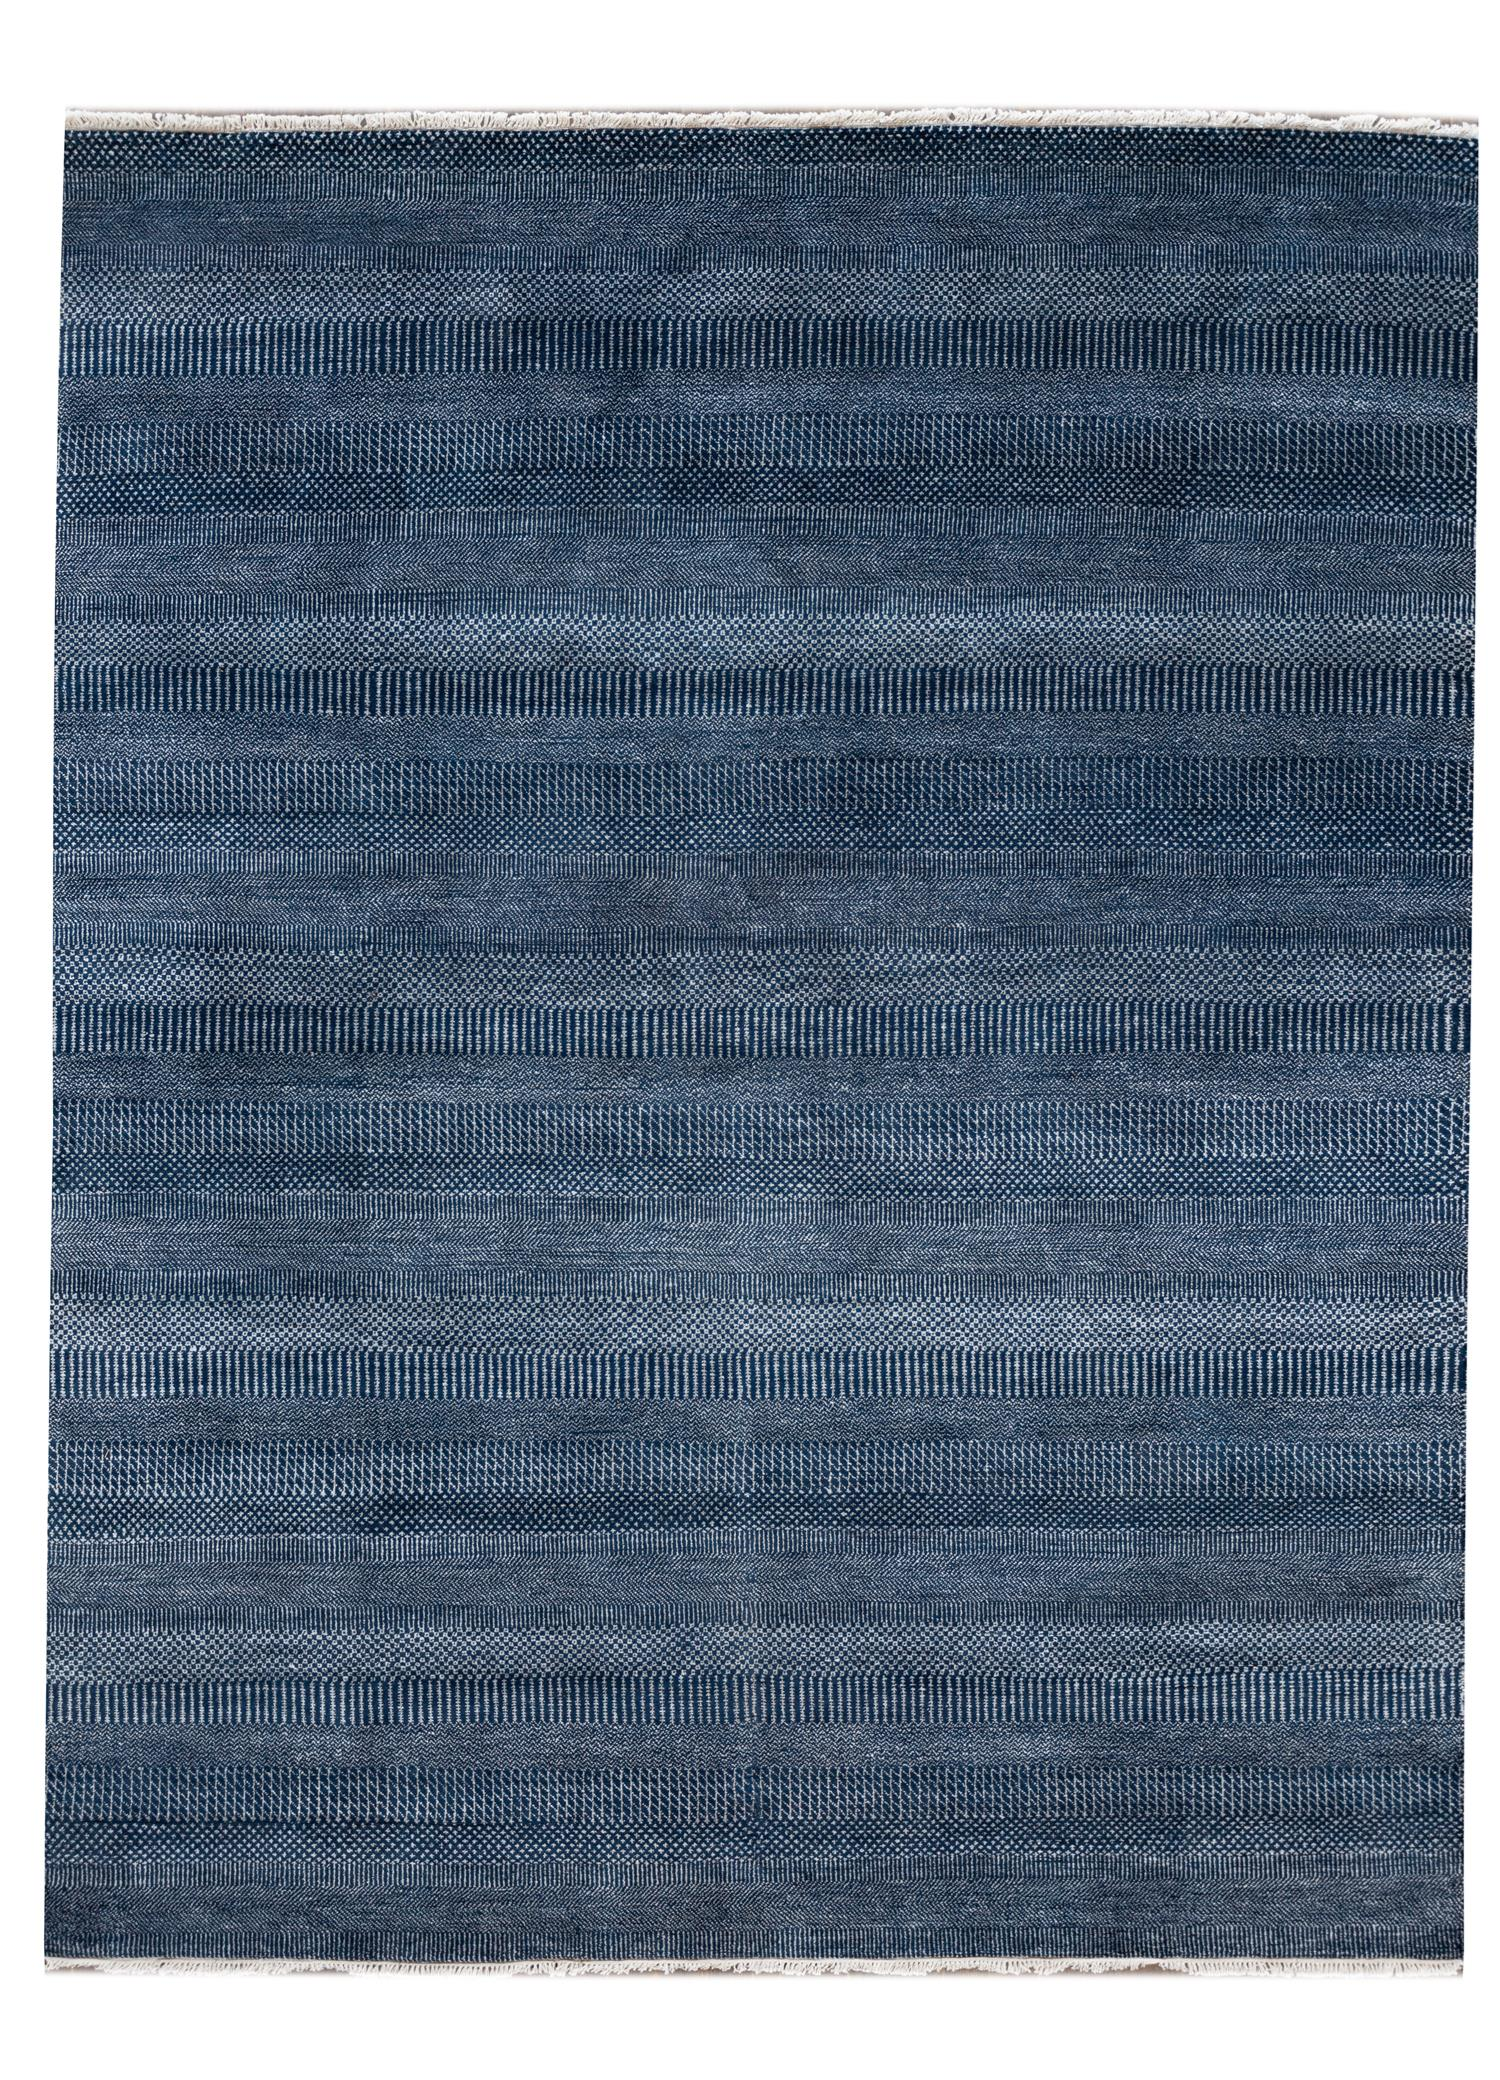 21st Century Contemporary Savannah Rug, 8x10